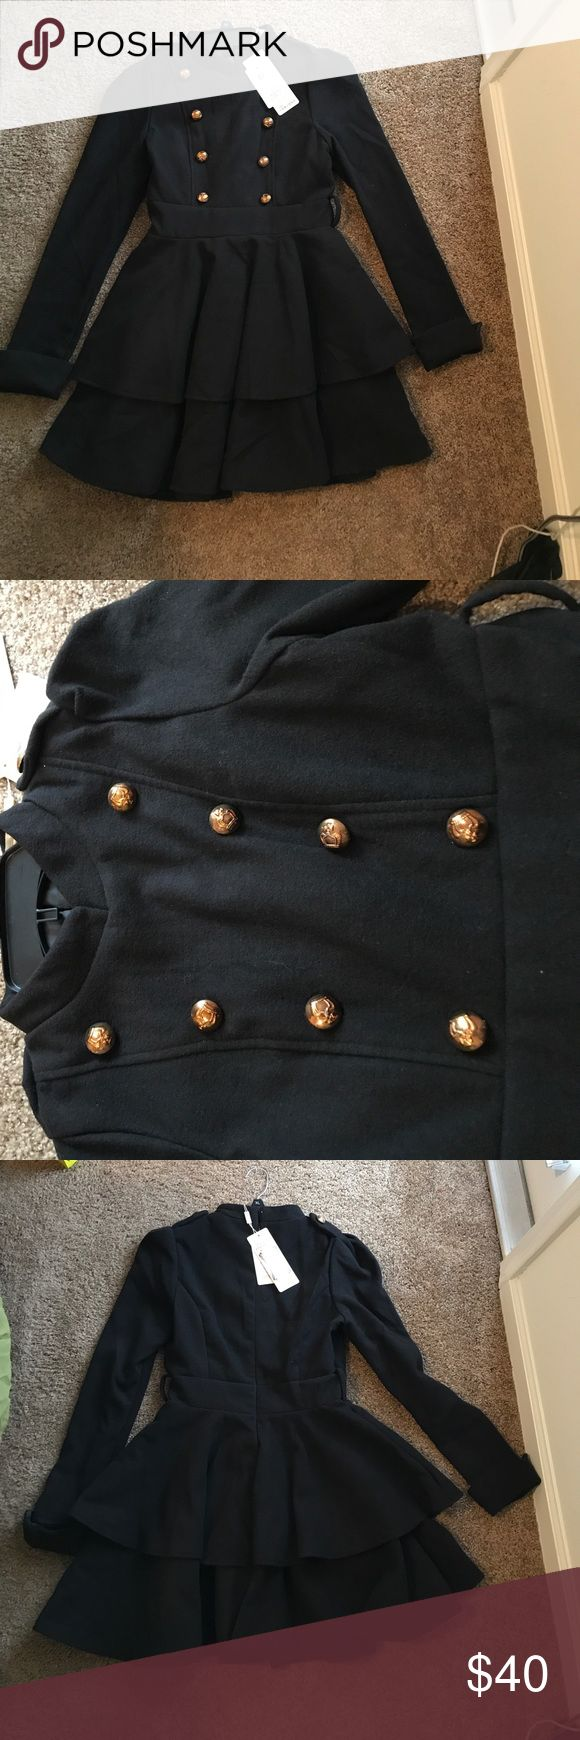 Black pea coat. Back zip. Size medium Size medium. Black peacoat with gold buttons. Never worn. Beautiful jacket not suggested for women with longer limbs ( my arms were too long for it ) Jackets & Coats Pea Coats